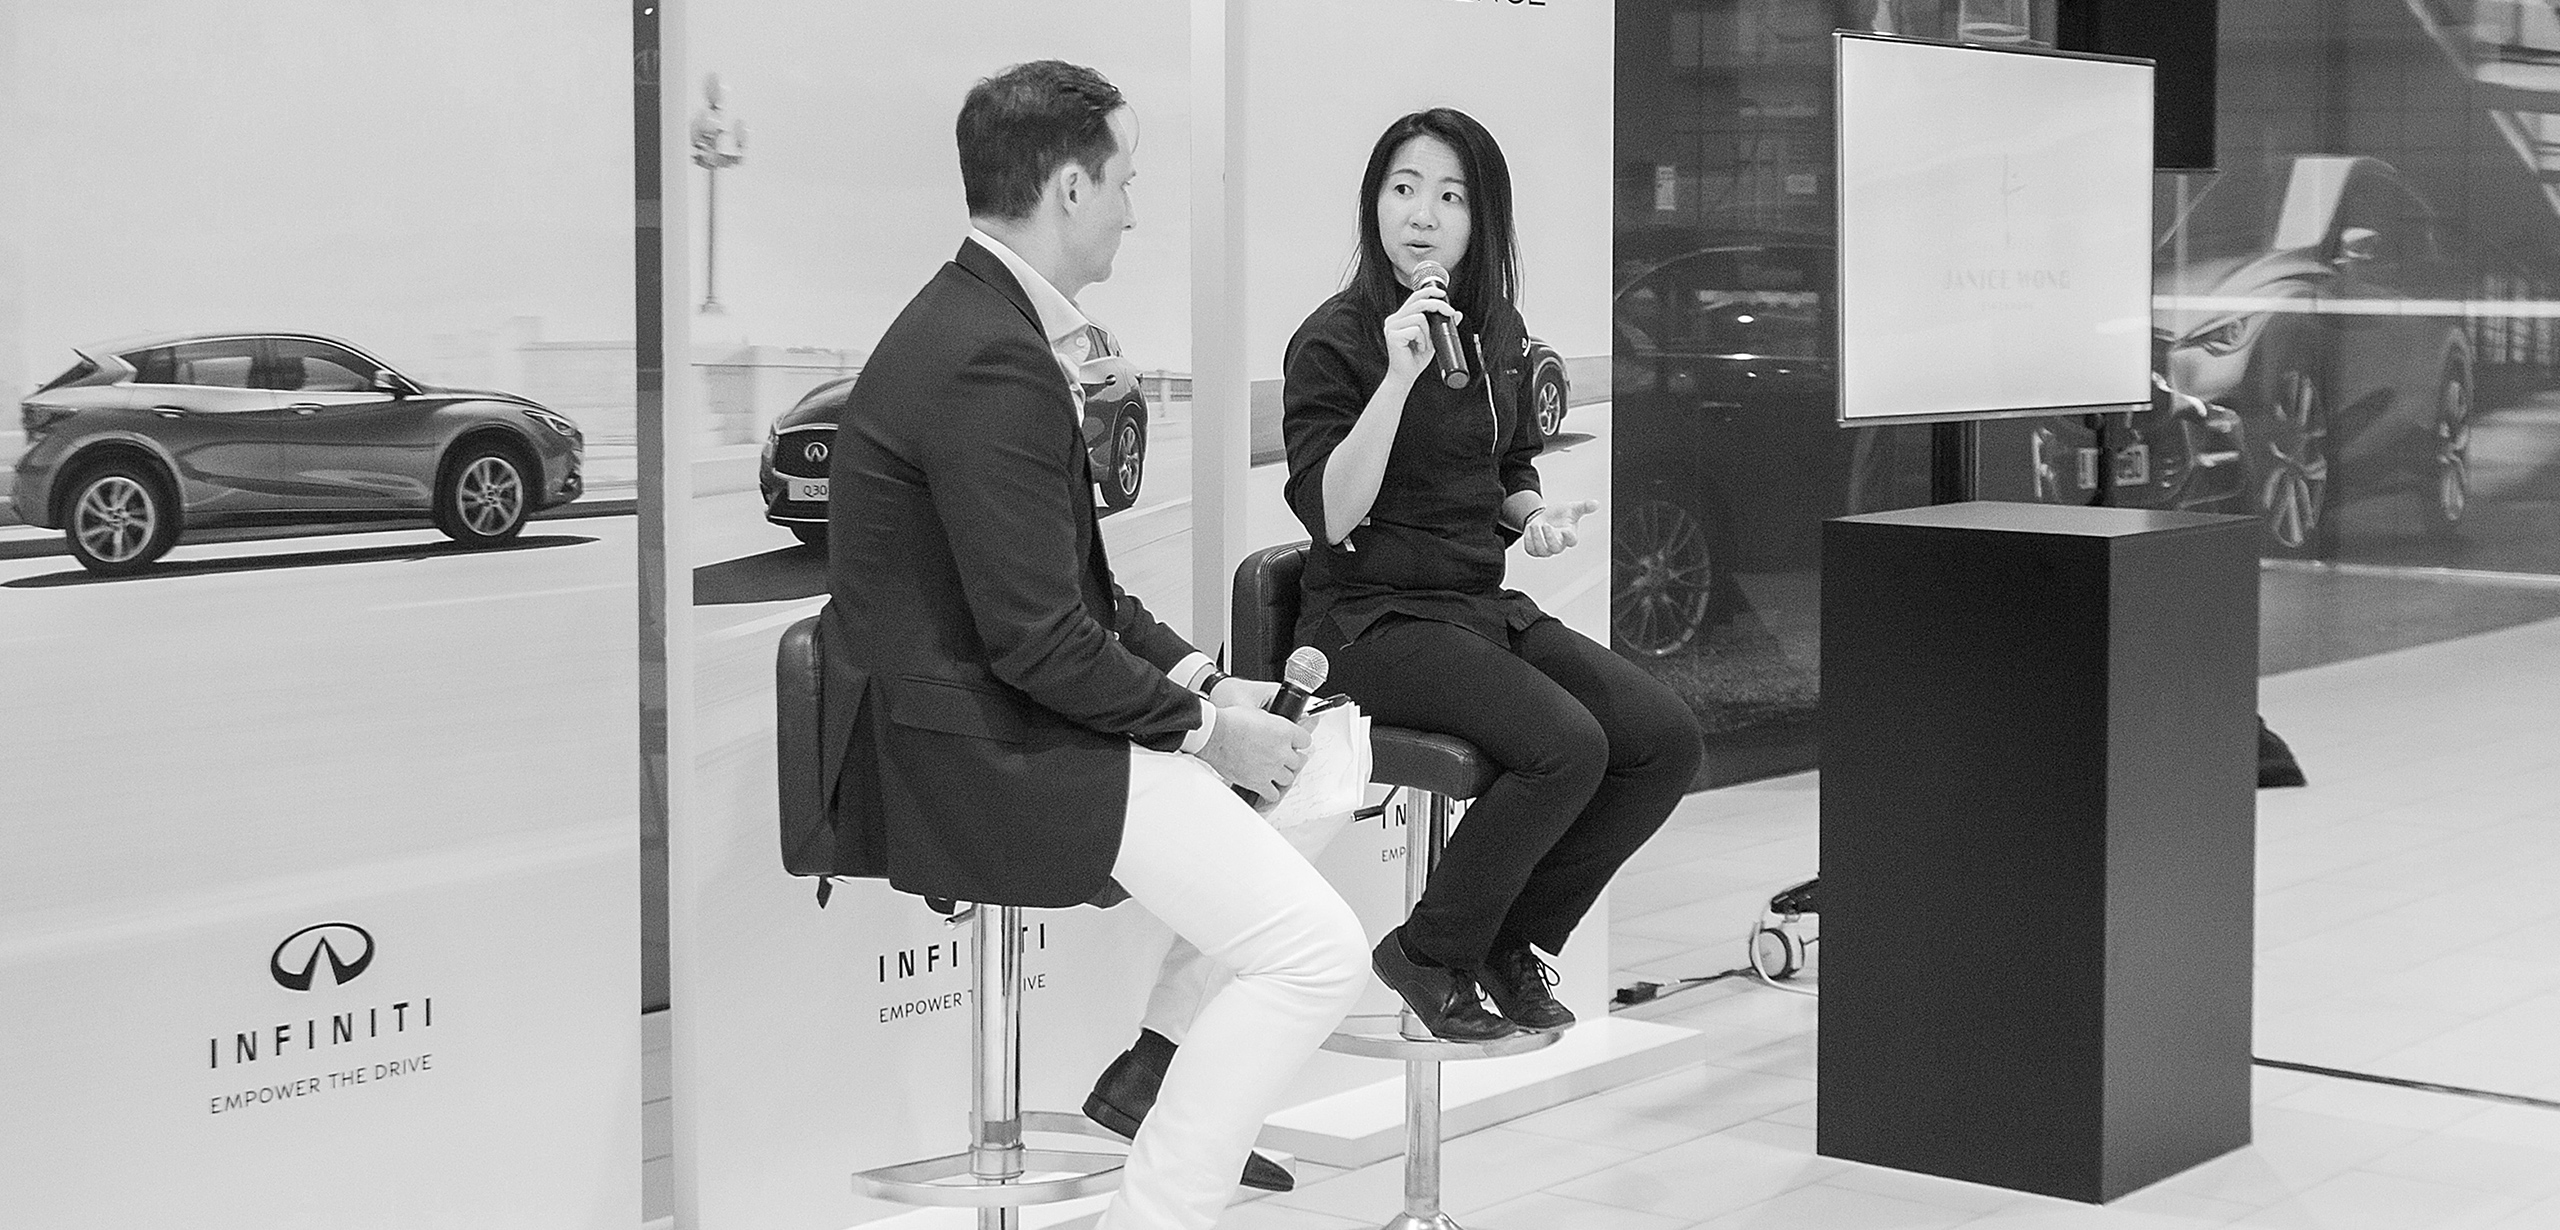 Local Entrepreneur and Asia's best Pastry Chef, Janice Wong being interviewed